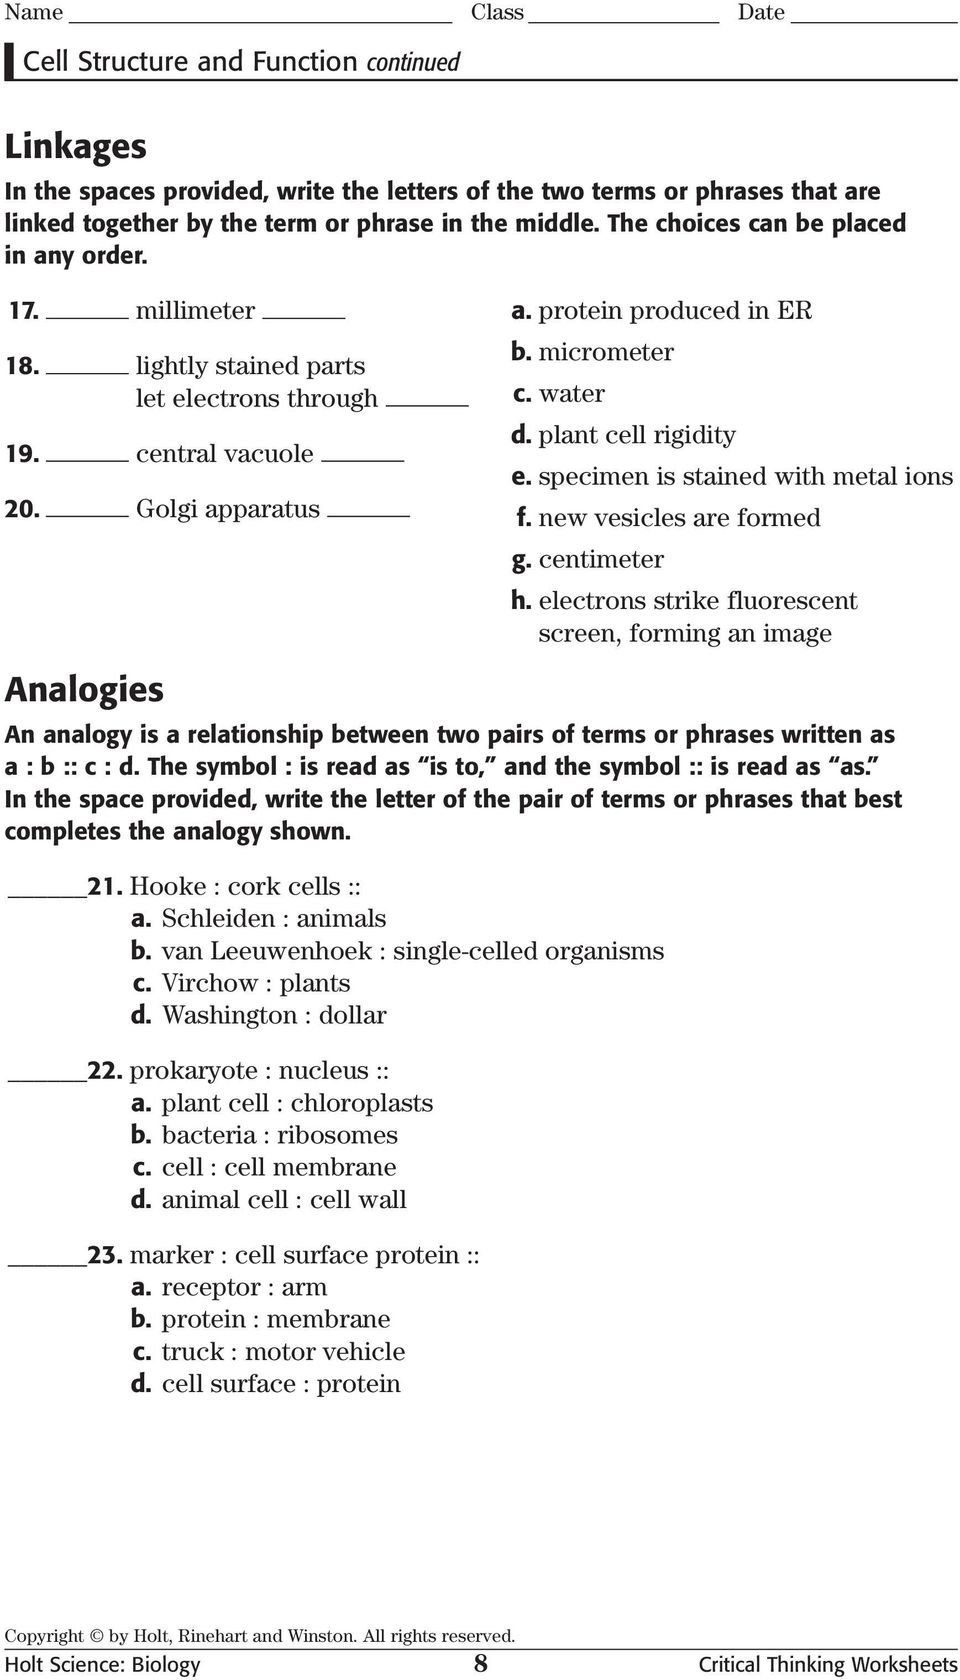 Holt Science Biology Critical Thinking Worksheets Pdf